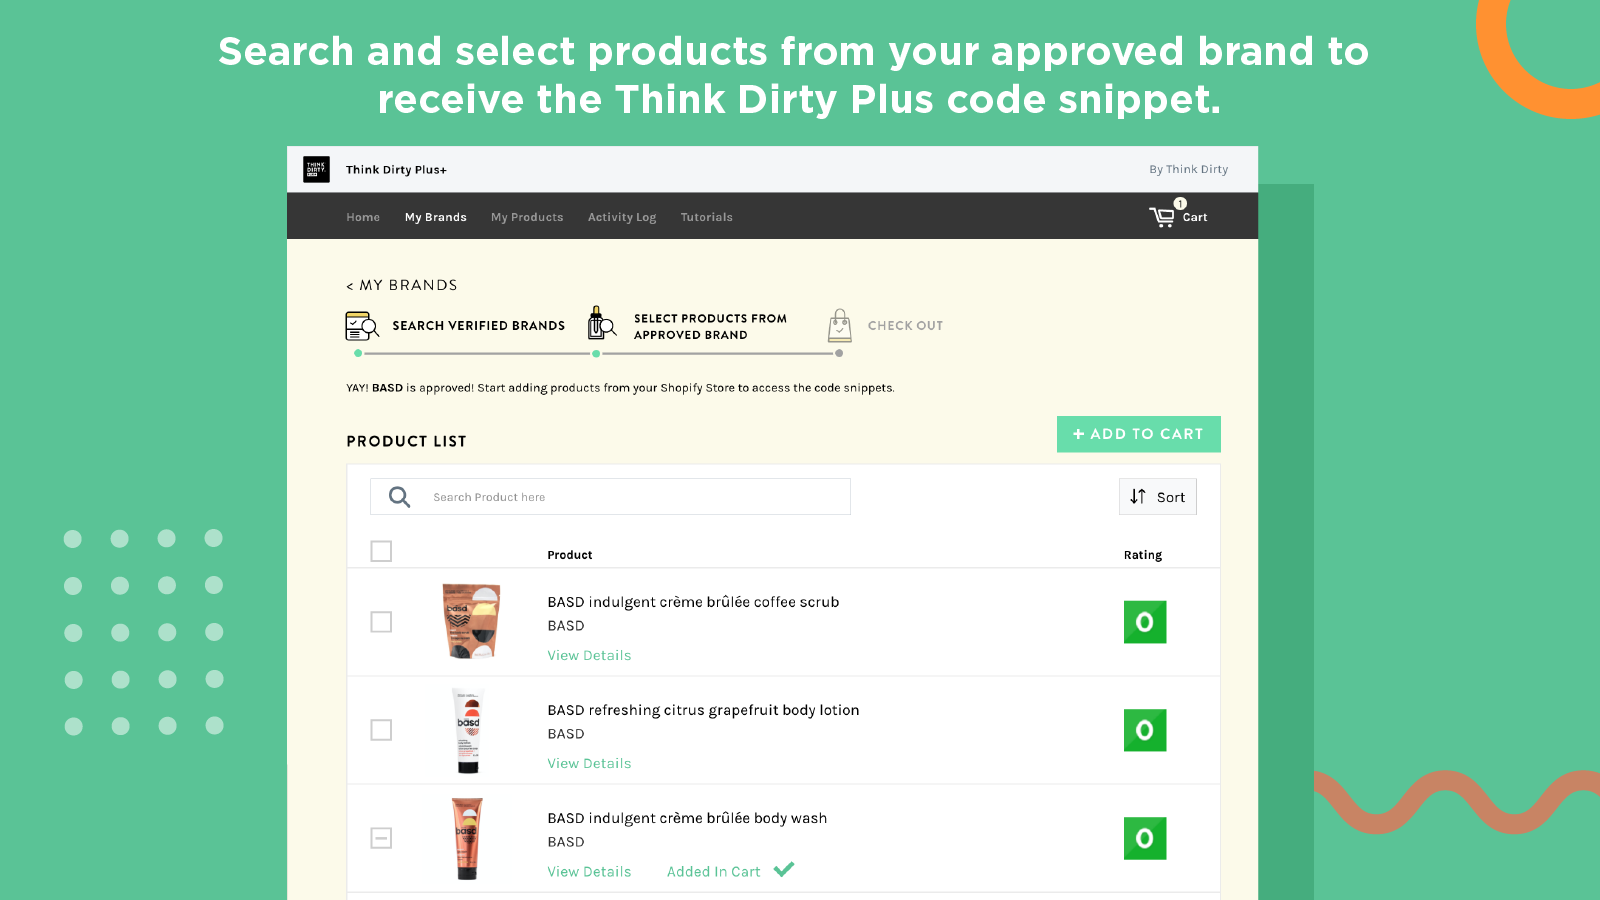 Search and select products from your approved brands